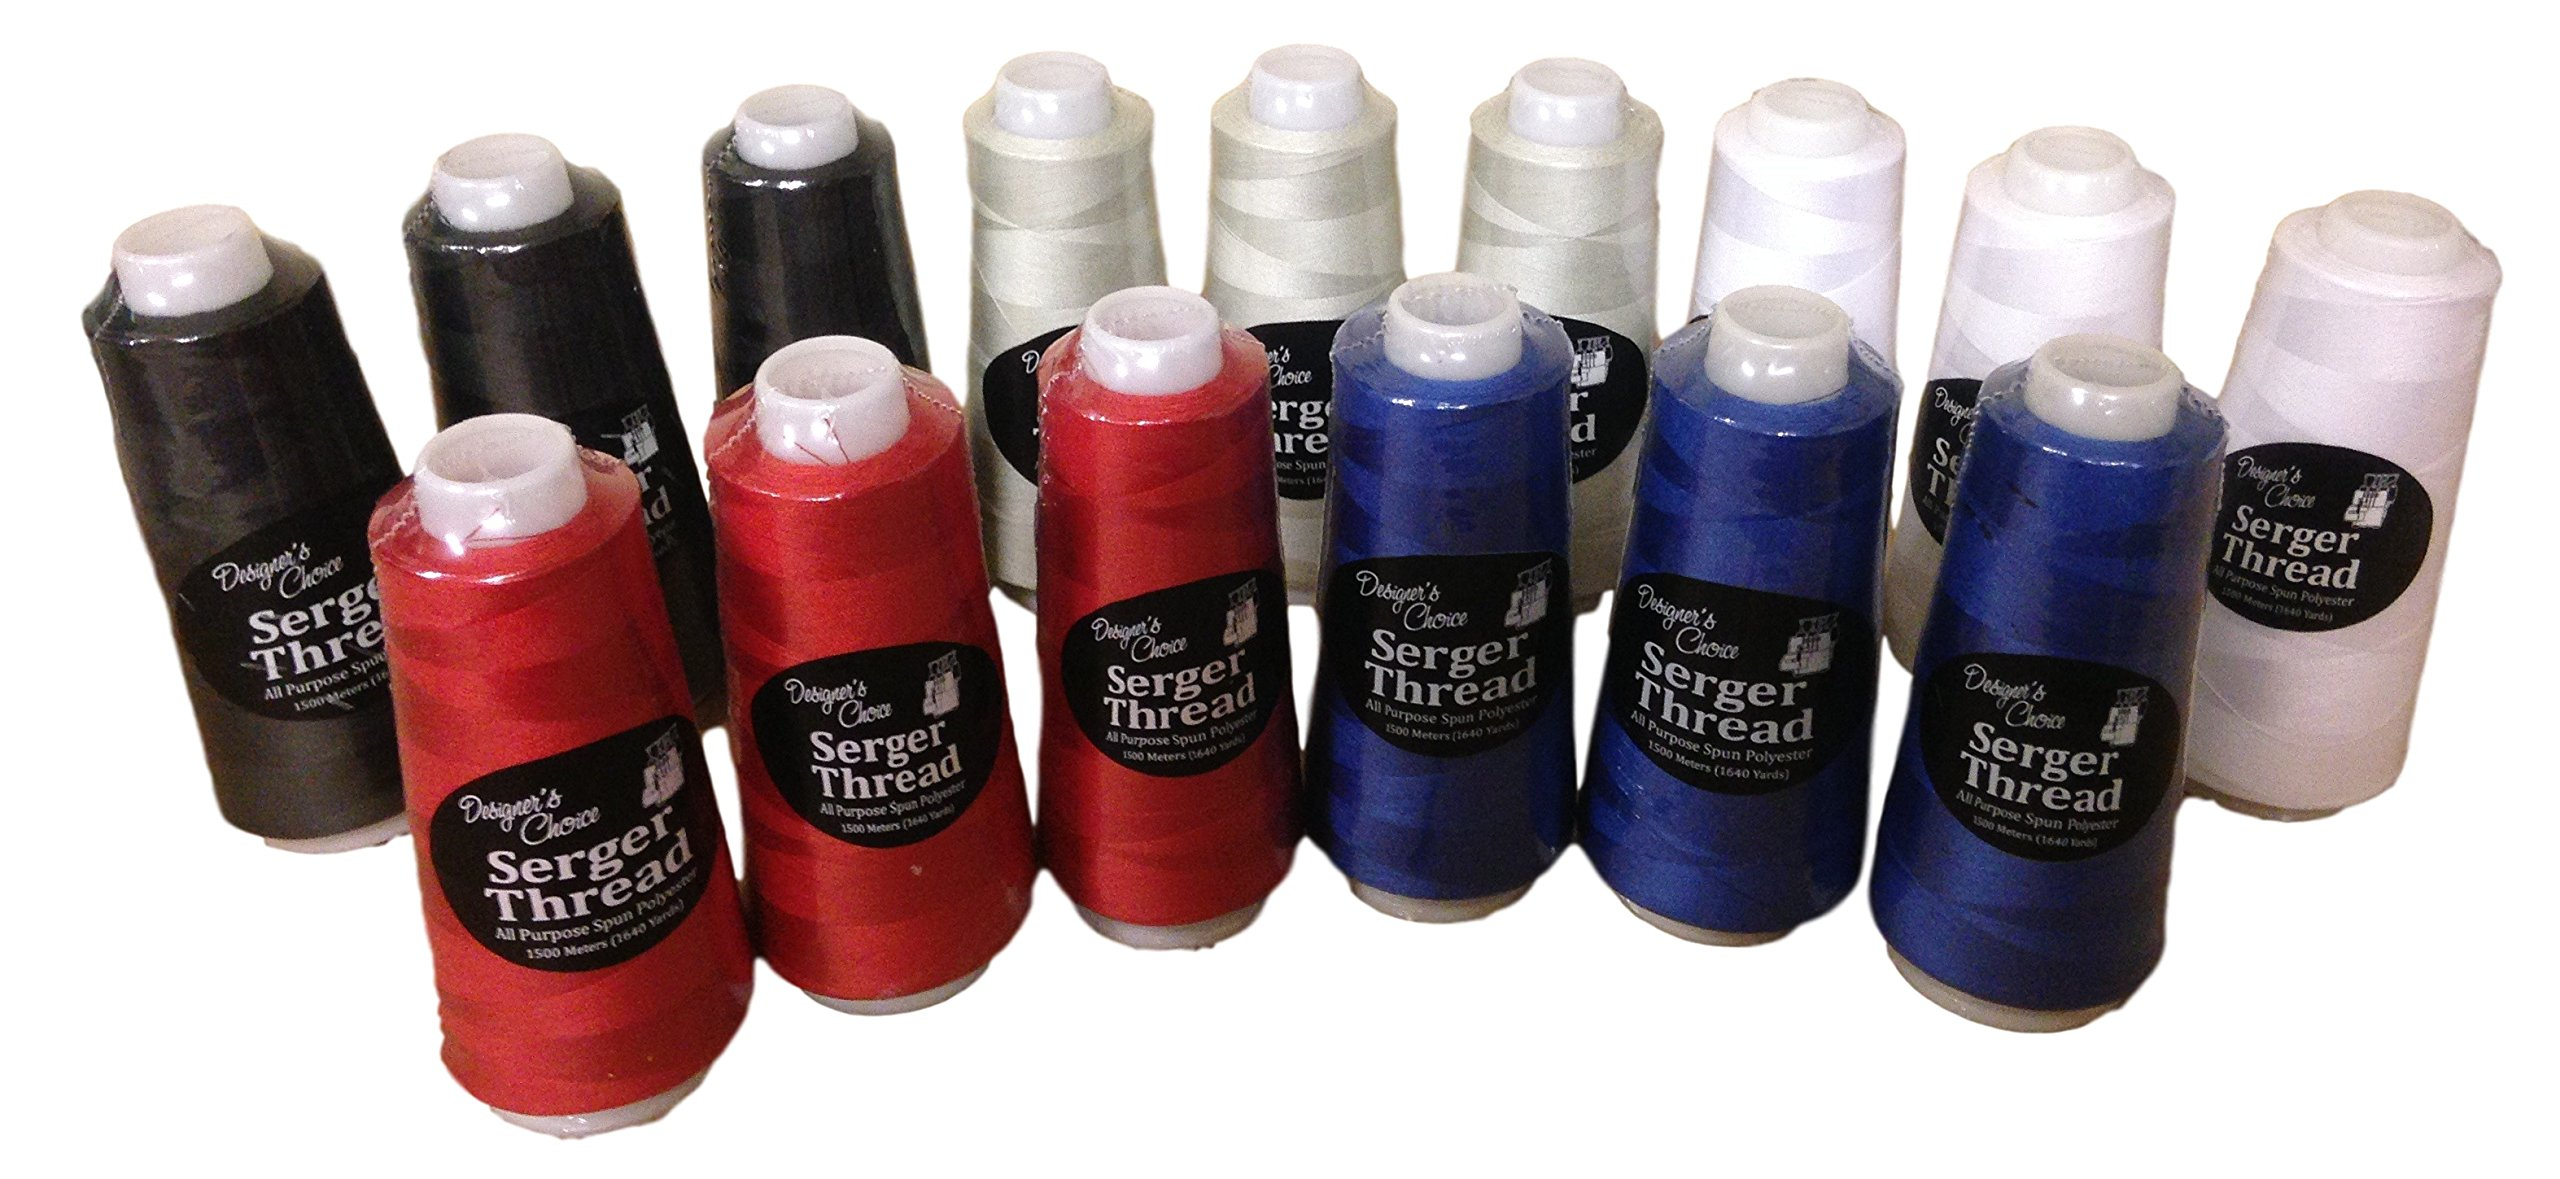 3 Thread Serger- Thread Bundle-15 Items: 3 each of 5 Colors (Red/Blue) (Primary) by Serger